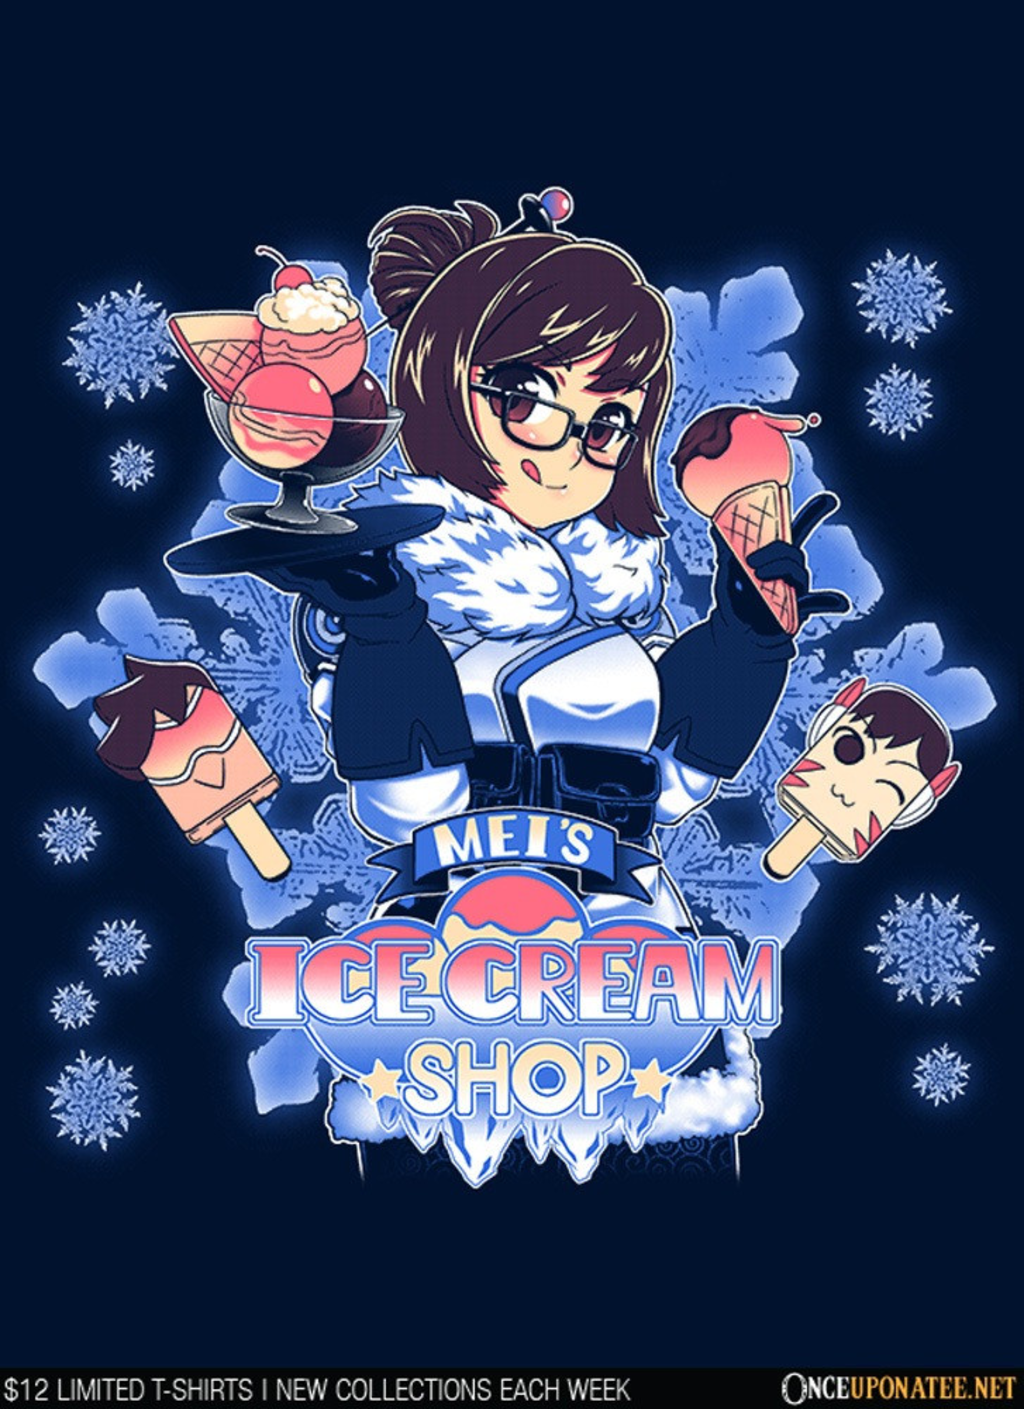 Once Upon a Tee: Mei's Ice Cream